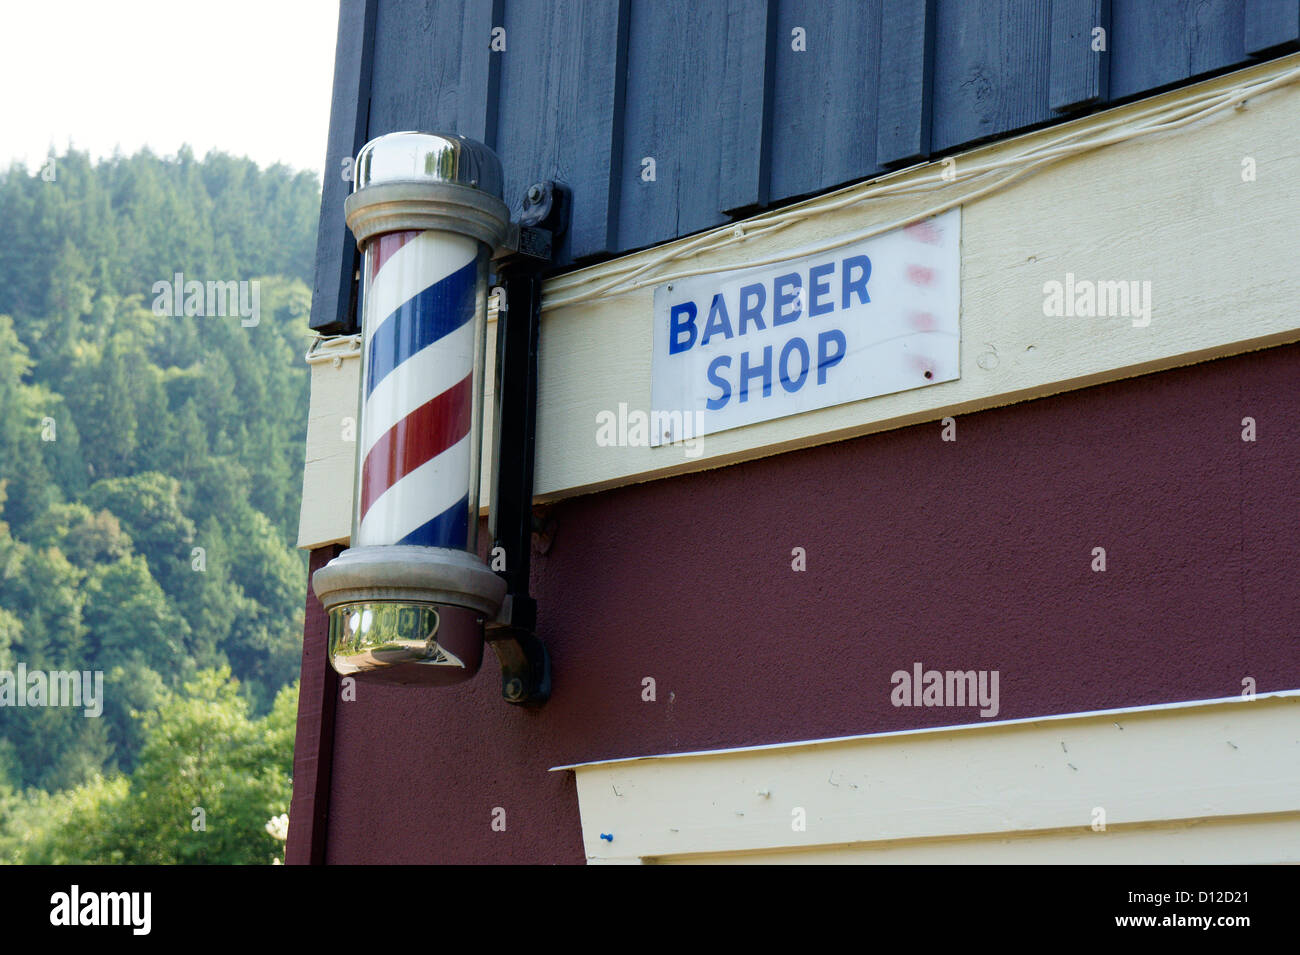 Barber shop pole and sign in Snug Cove, Bowen Island, British Columbia, Canada - Stock Image